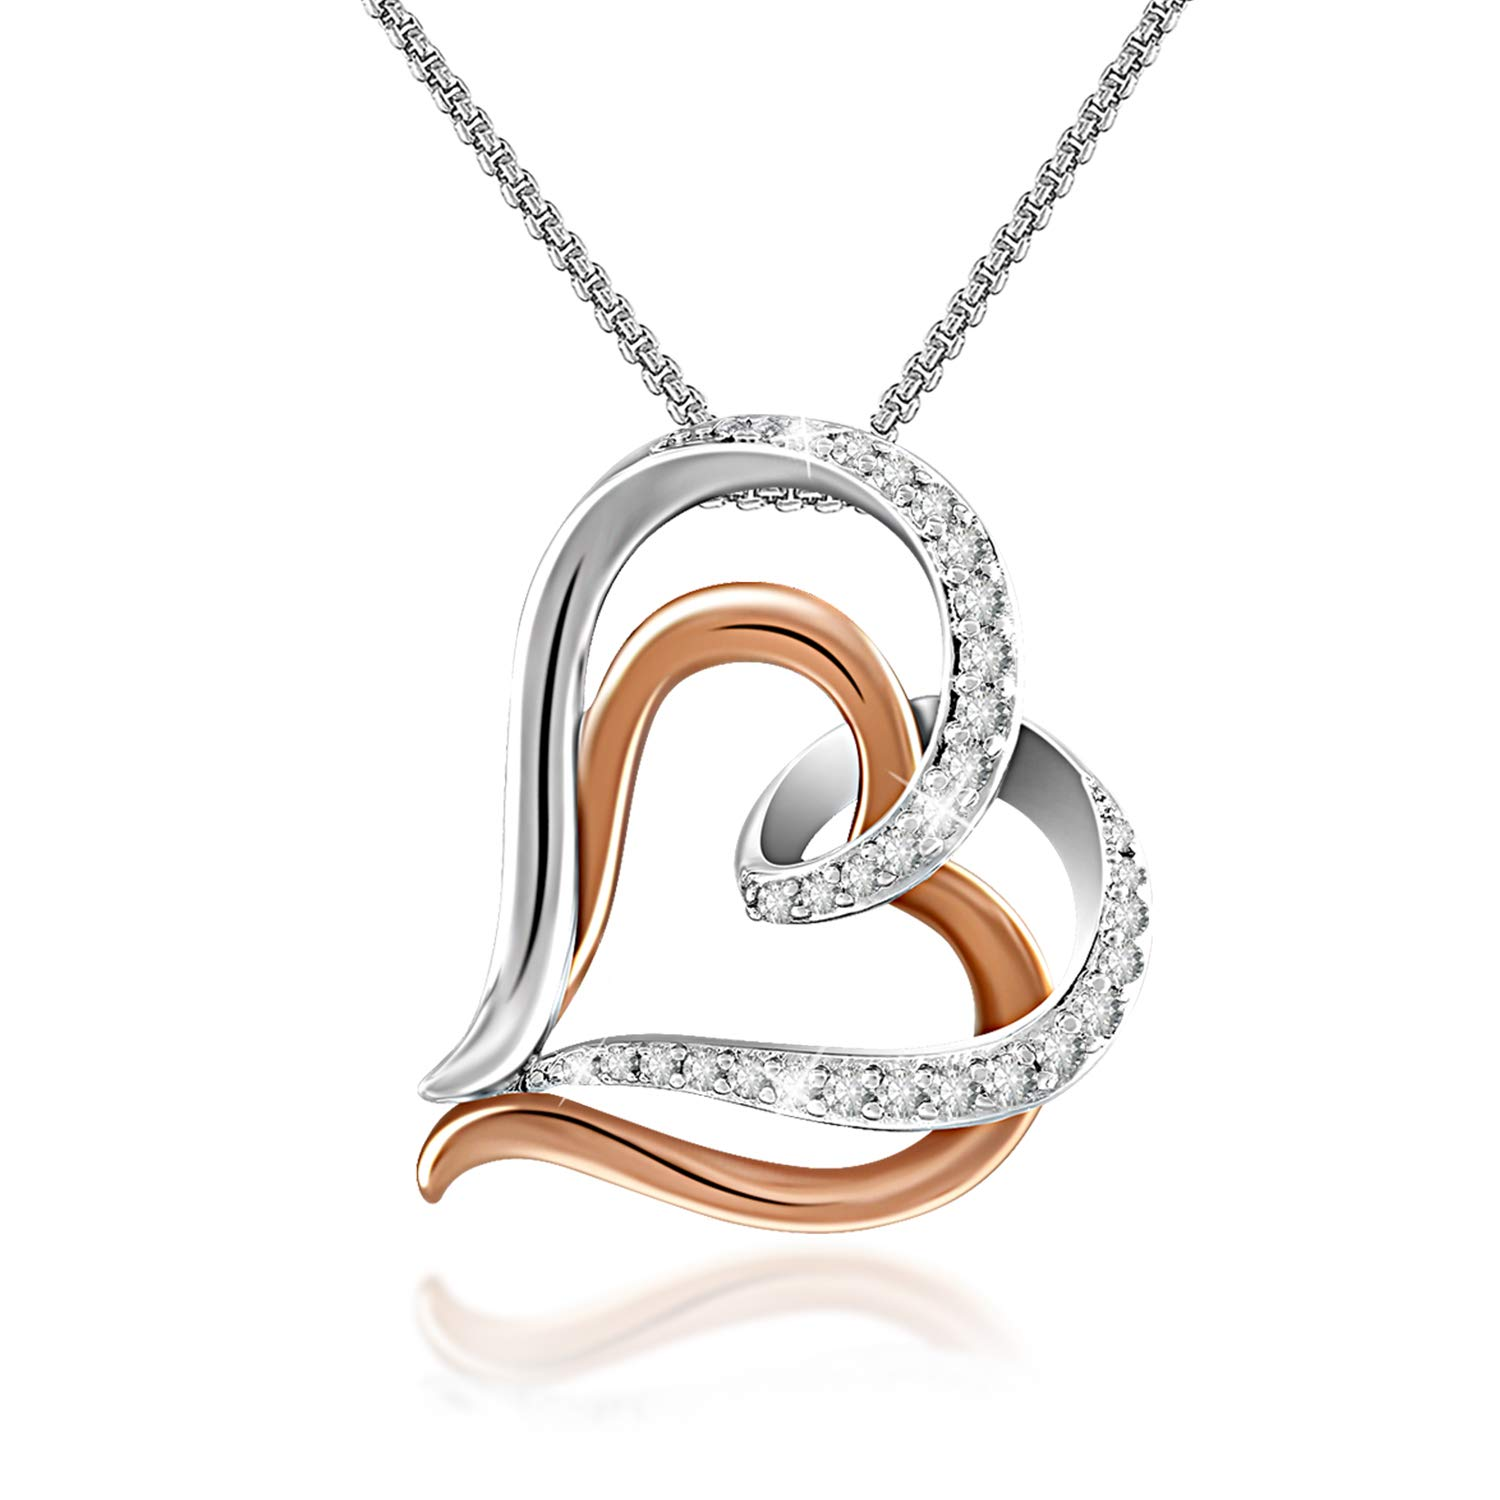 GEORGE · SMITH Double Love Heart Pendant Necklace, 14K Rose Gold Heart Shaped Necklace with 5A Cubic Zirconia Fashion Jewelry Gifts for Women by GEORGE · SMITH